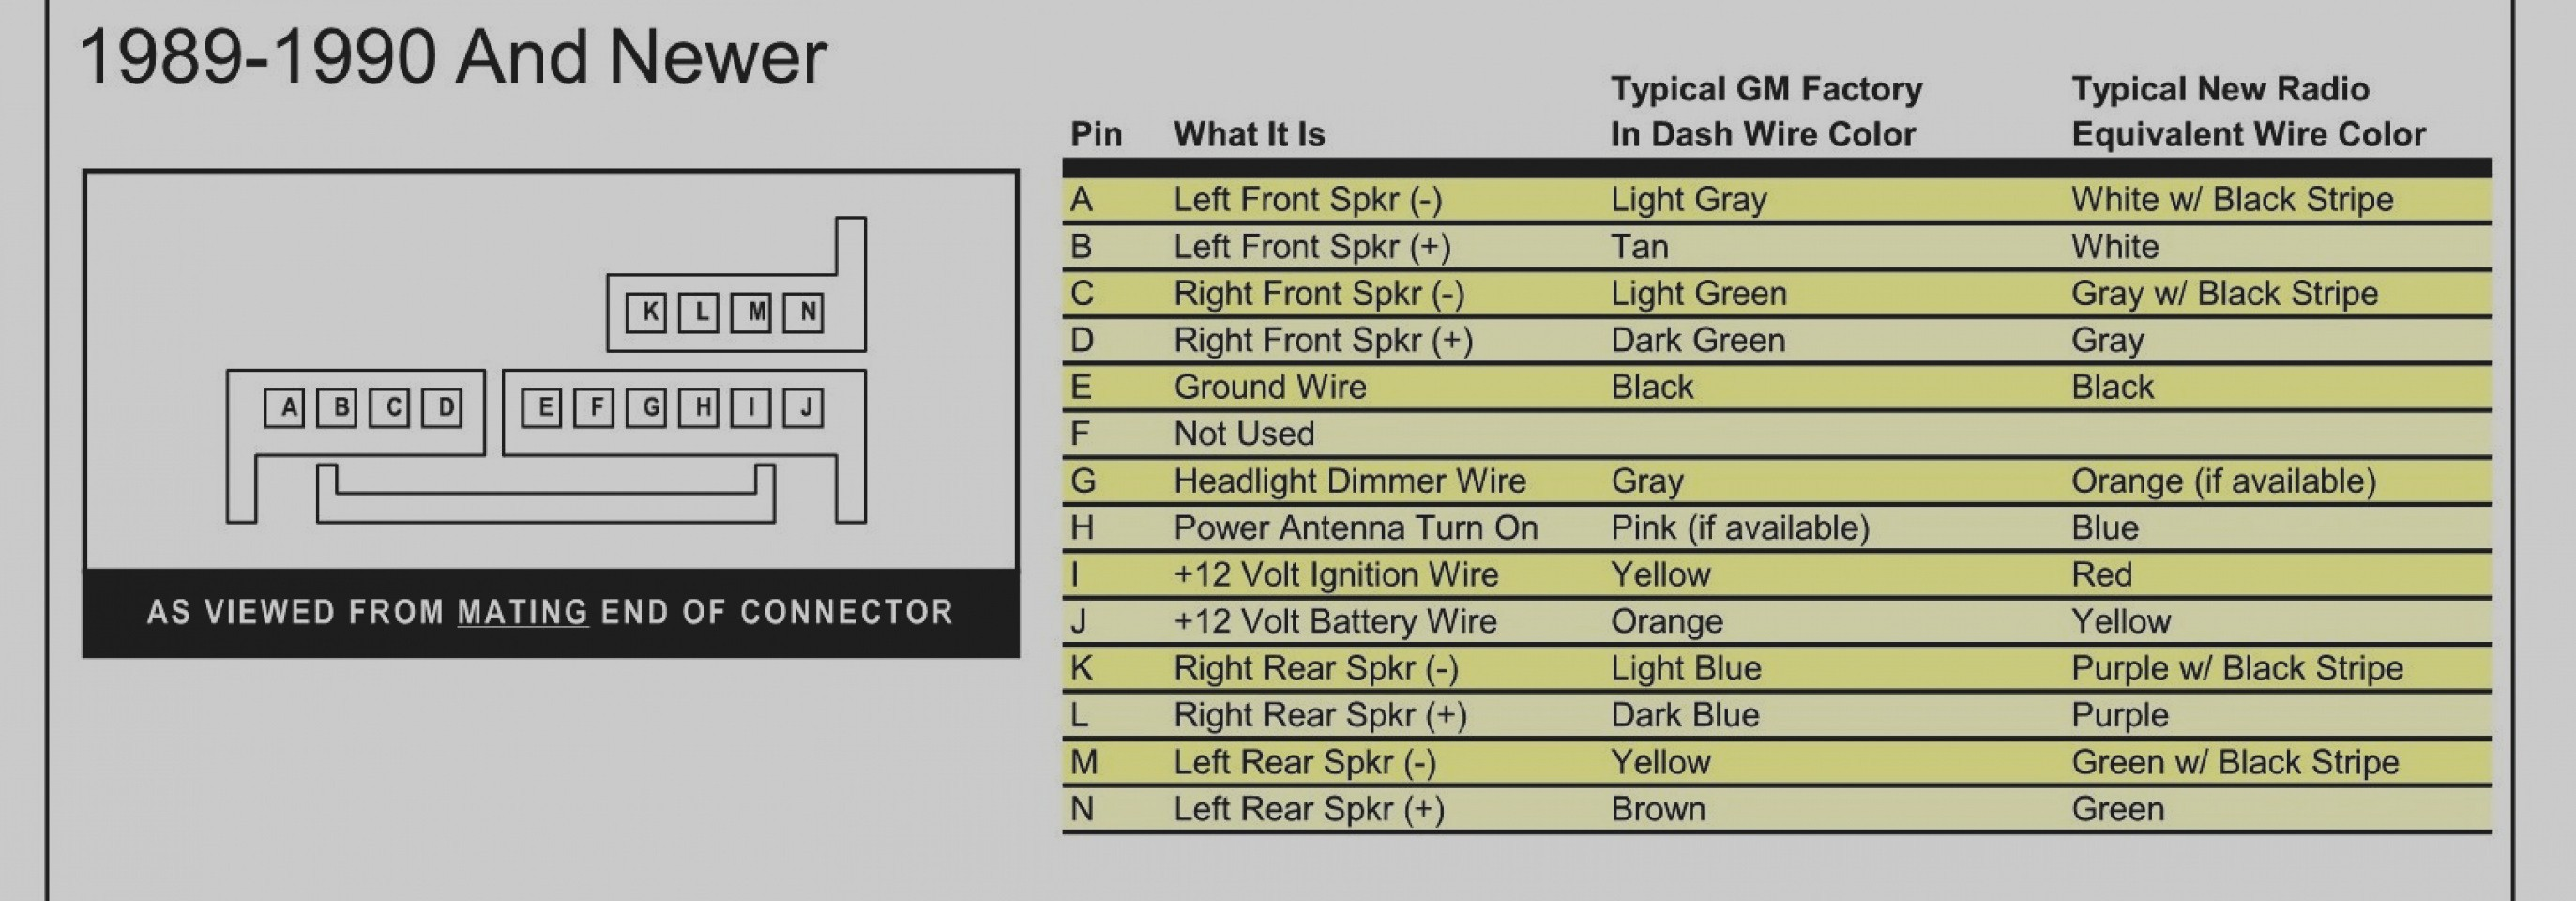 2003 Silverado Radio Wiring Diagram from static-resources.imageservice.cloud